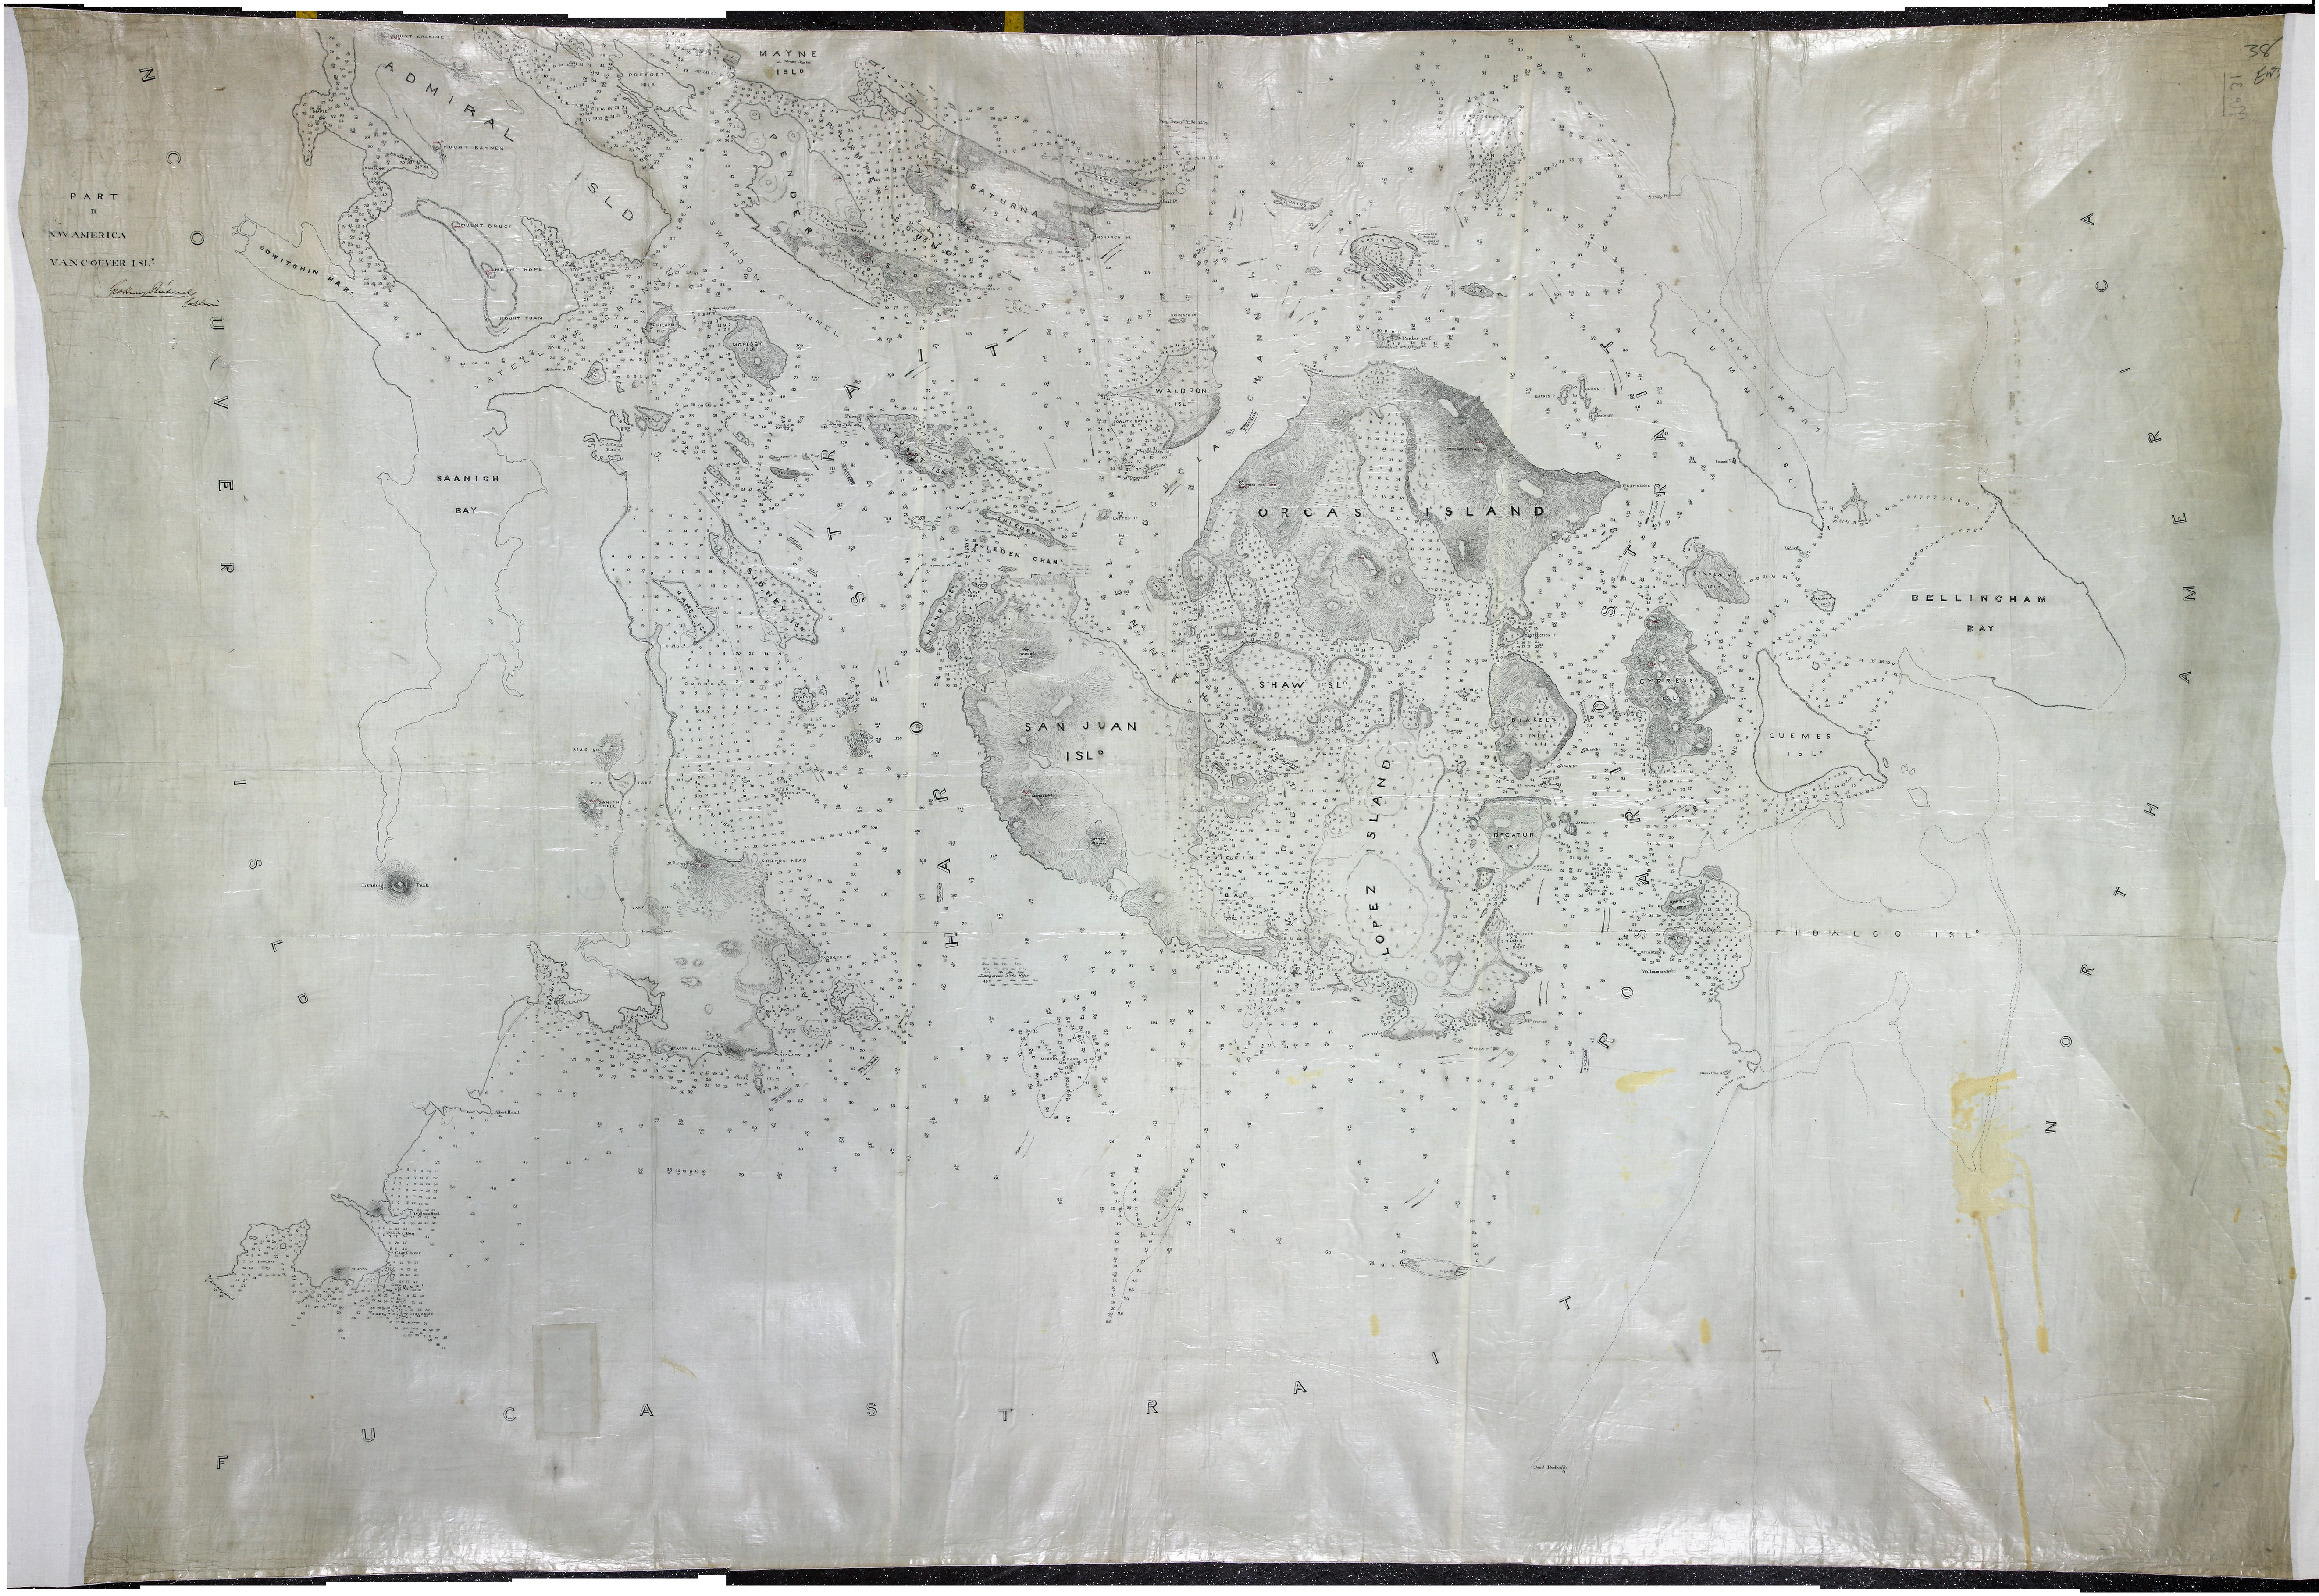 San Juan Water Boundary (Arbitration) : list of maps sent to Admiral Prevost at Berlin on the 12th June 1872 [map 37]